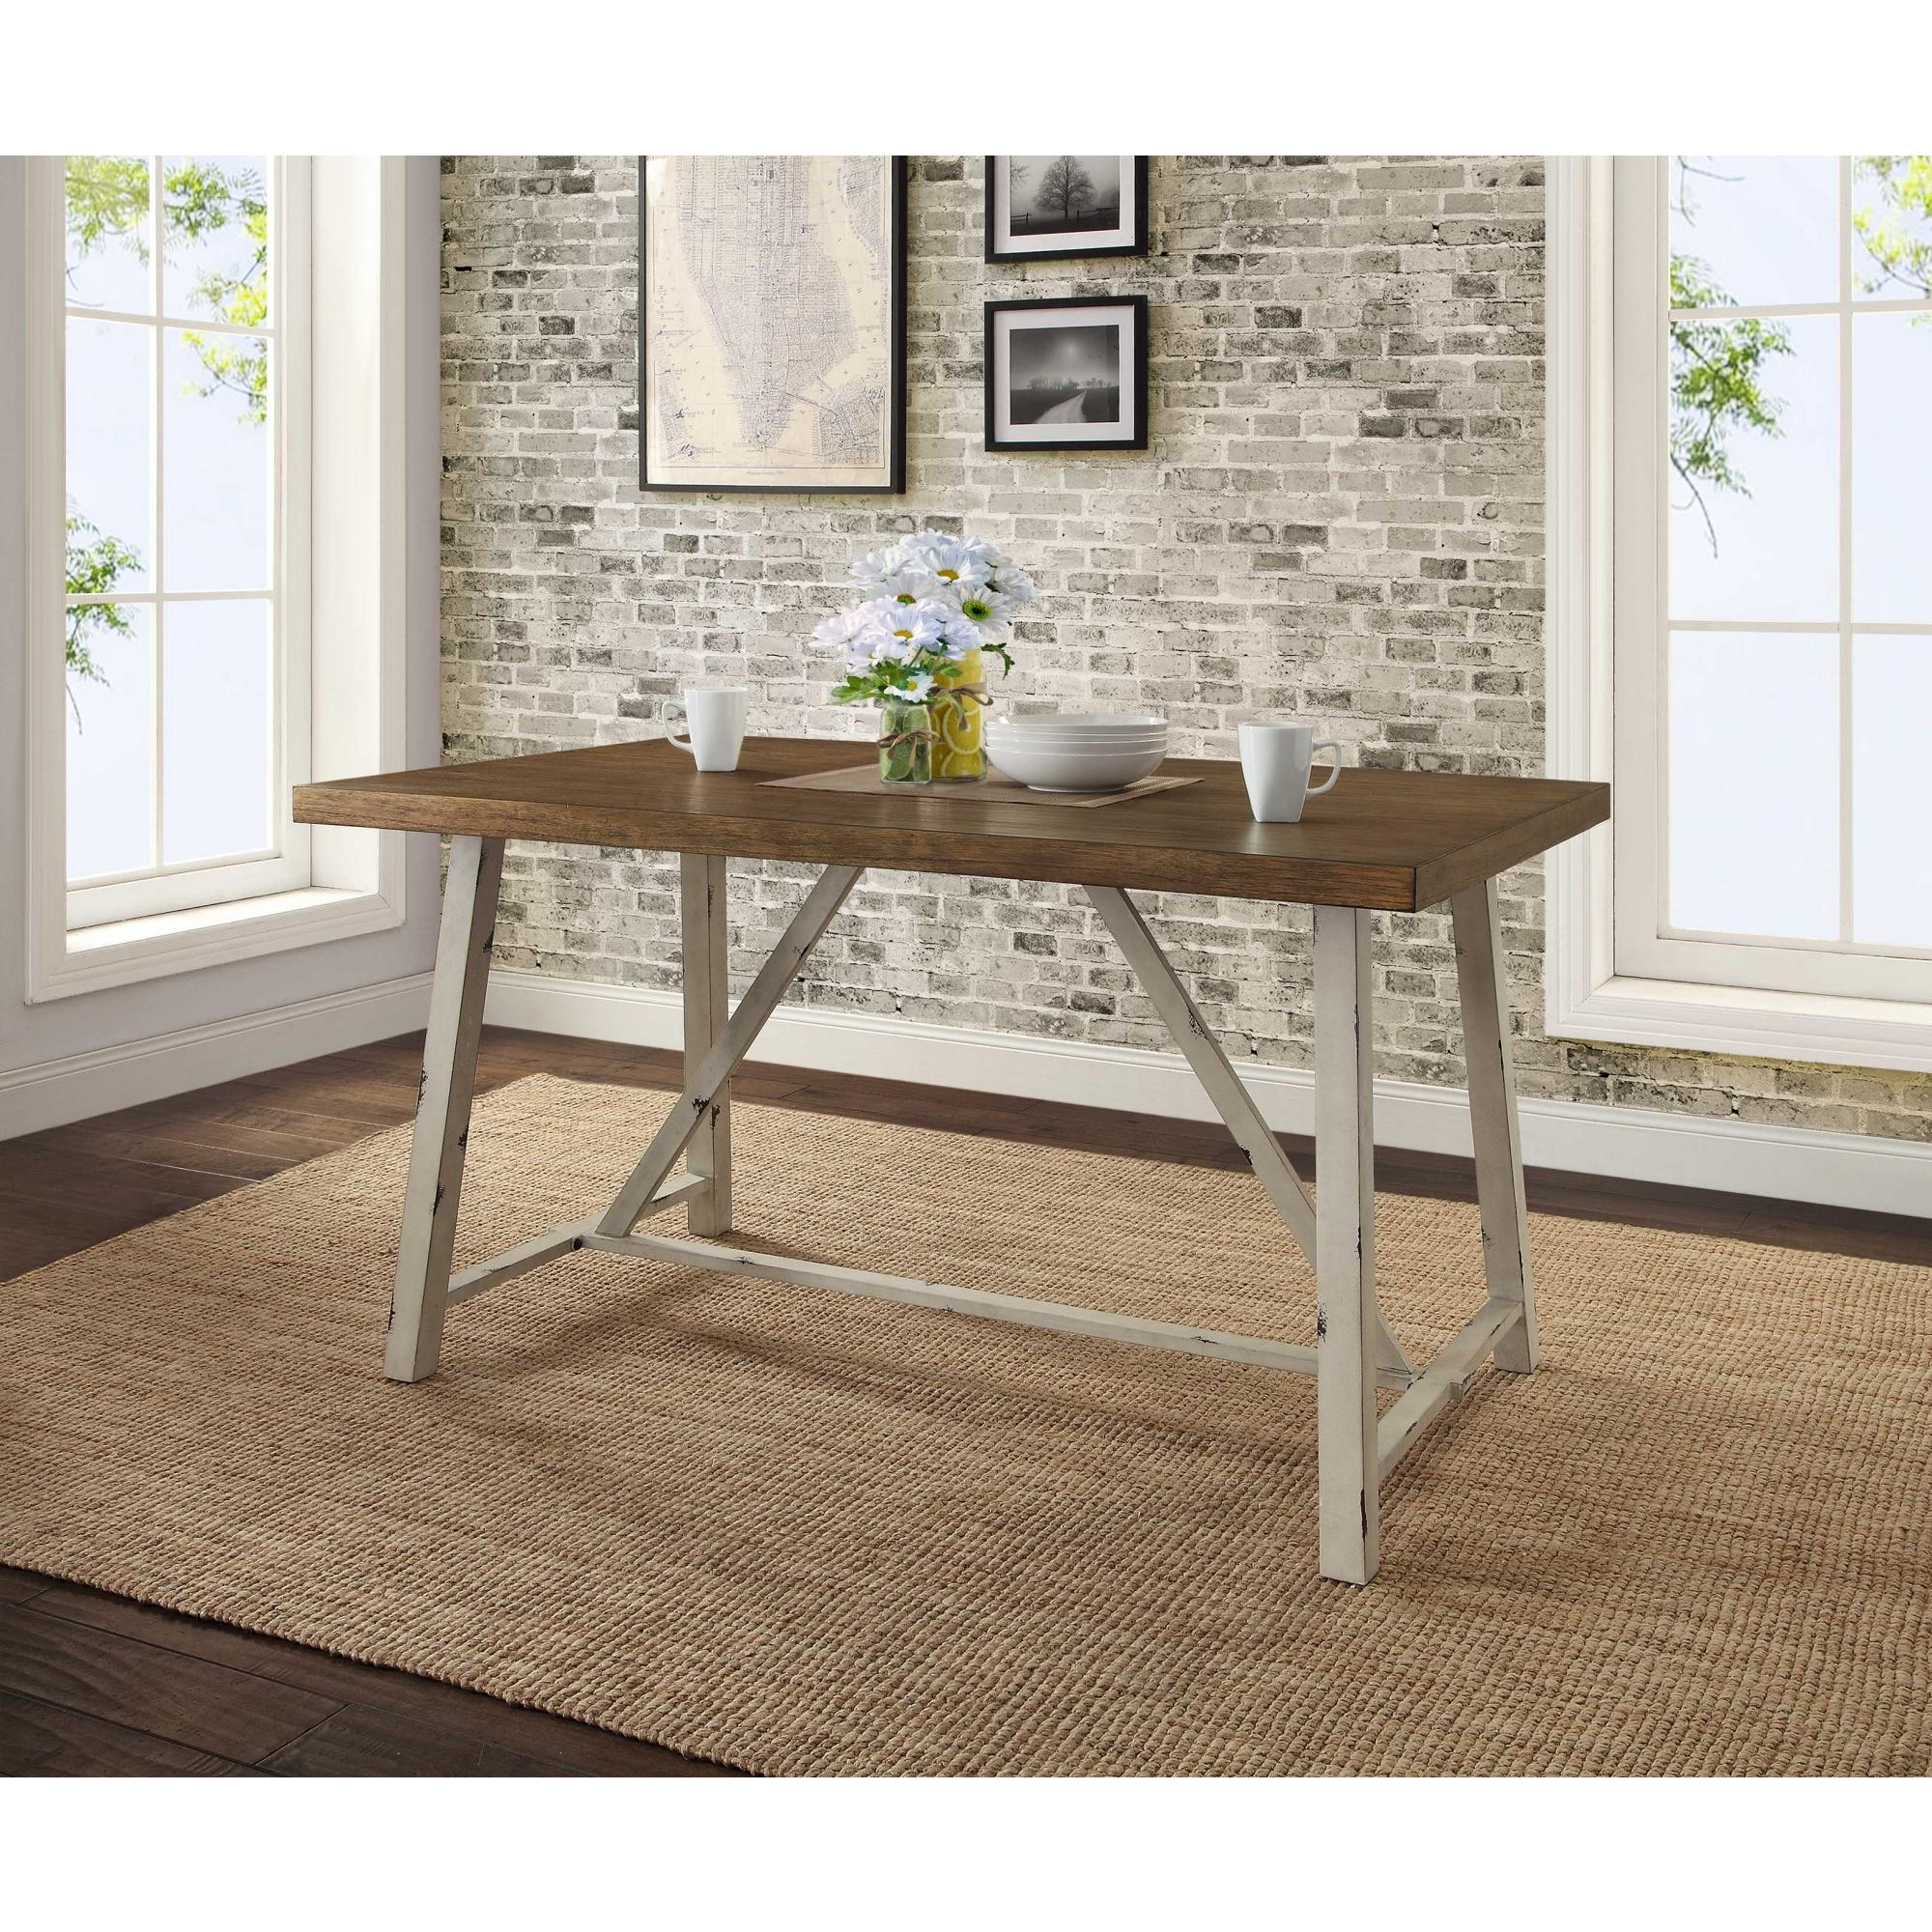 Better Homes U0026 Gardens Collin Wood And Metal Dining Table, Comfortably  Seats 4, Distressed White Table Base And Brown Top   Walmart.com